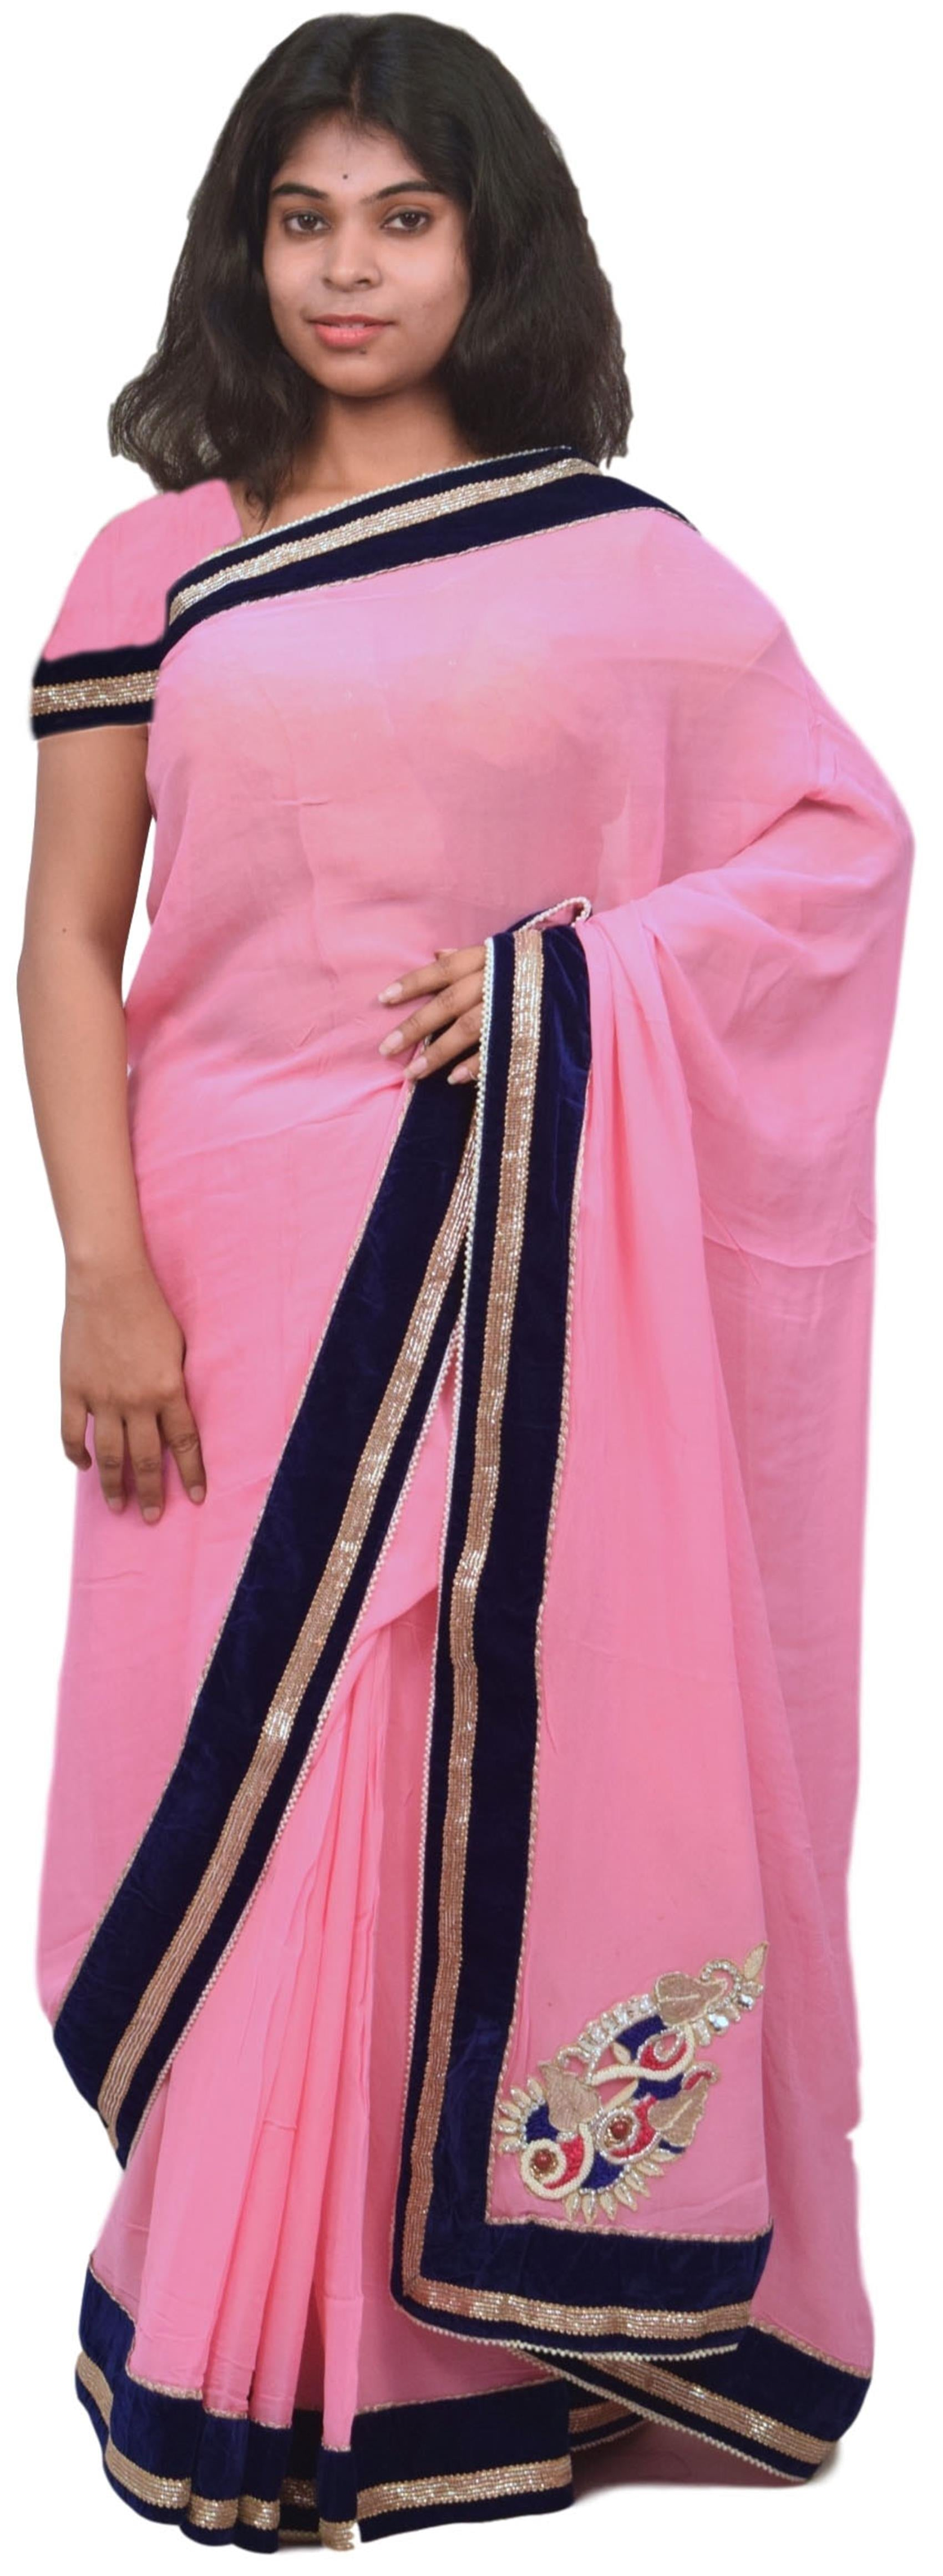 Pink Designer Georgette (Viscos) Zari Bullion Pearl Beads Thread Stone Hand Embroidery Work Sari Saree B236